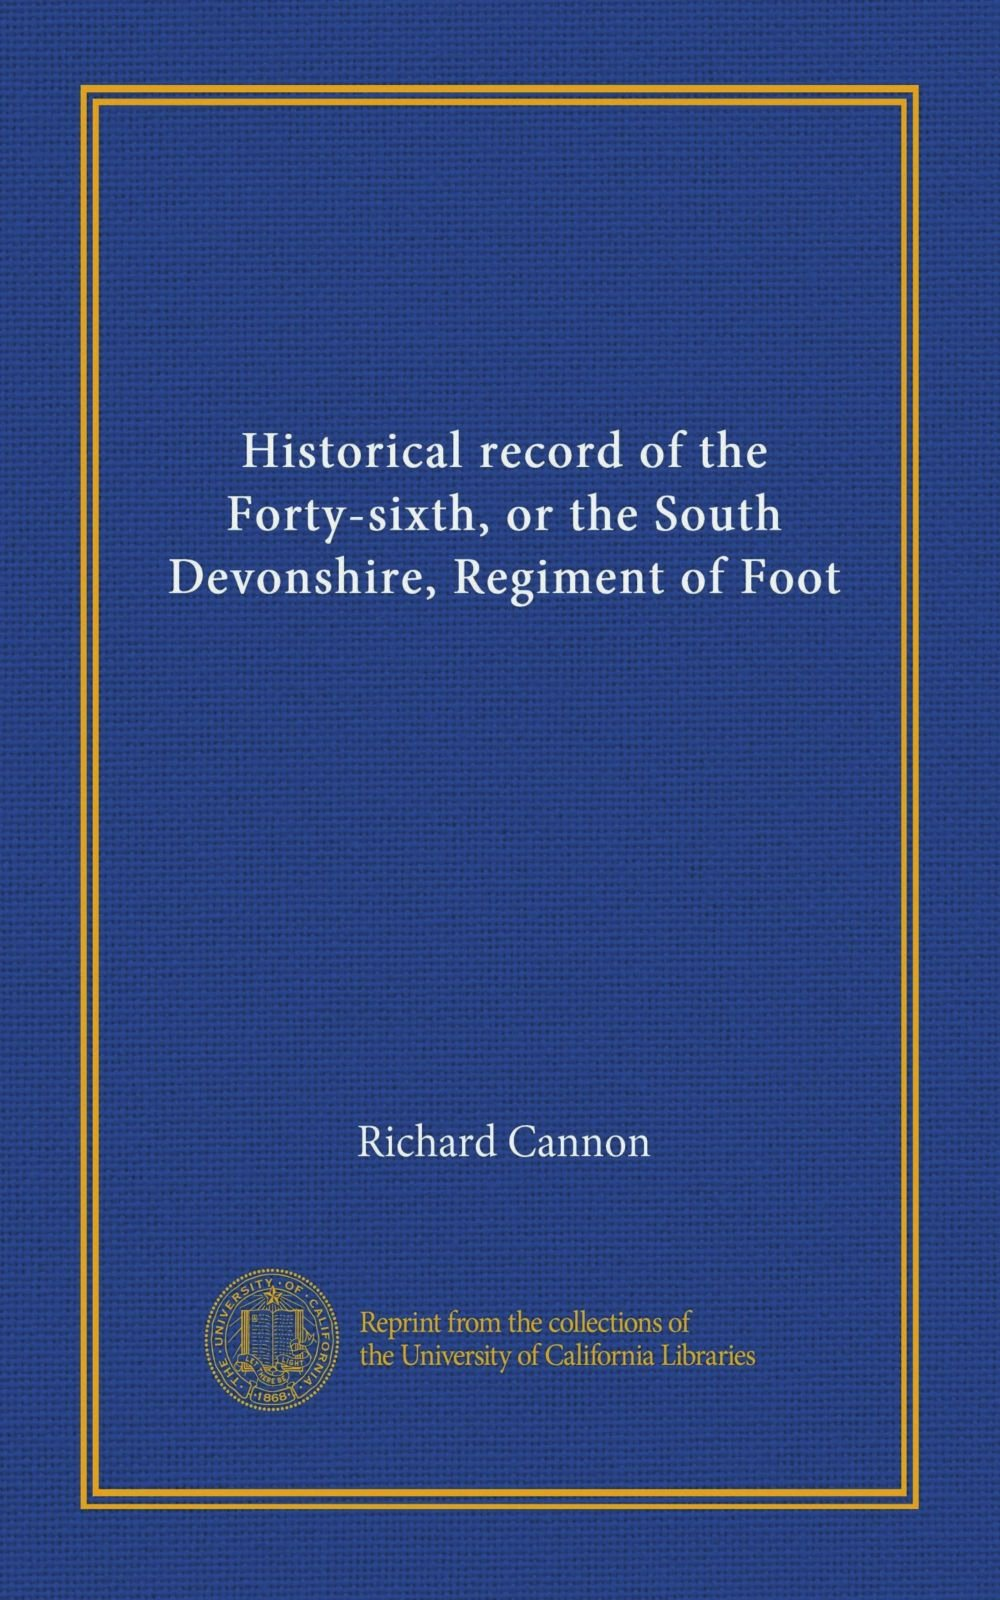 Read Online Historical record of the Forty-sixth, or the South Devonshire, Regiment of Foot PDF